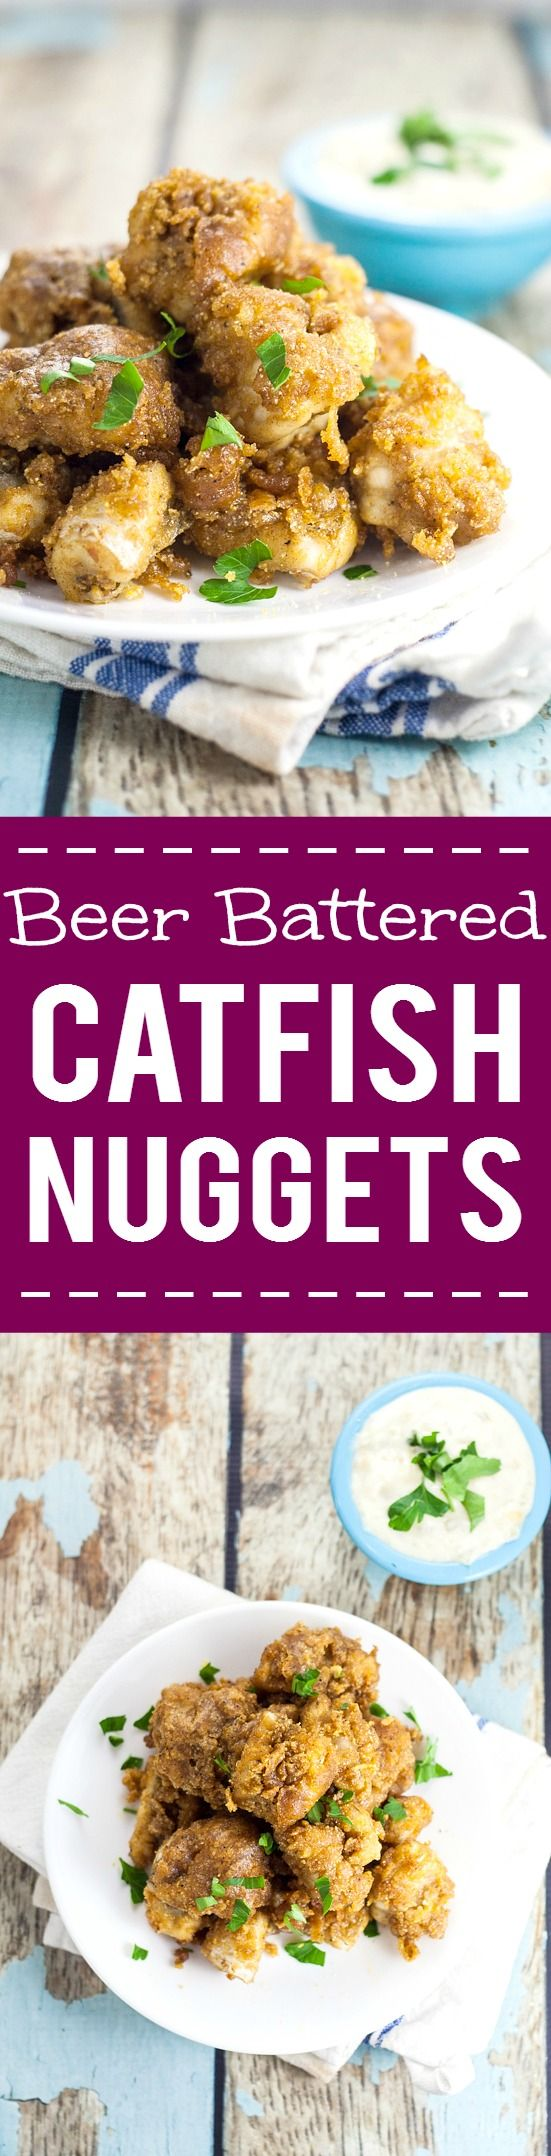 Beer Battered, deep Fried Catfish Nuggets recipe - In just 30 minutes, you can have these golden and crispy, bite-sized deep fried Catfish Nuggets for a delicious, quick and easy family dinner recipe. YUM!